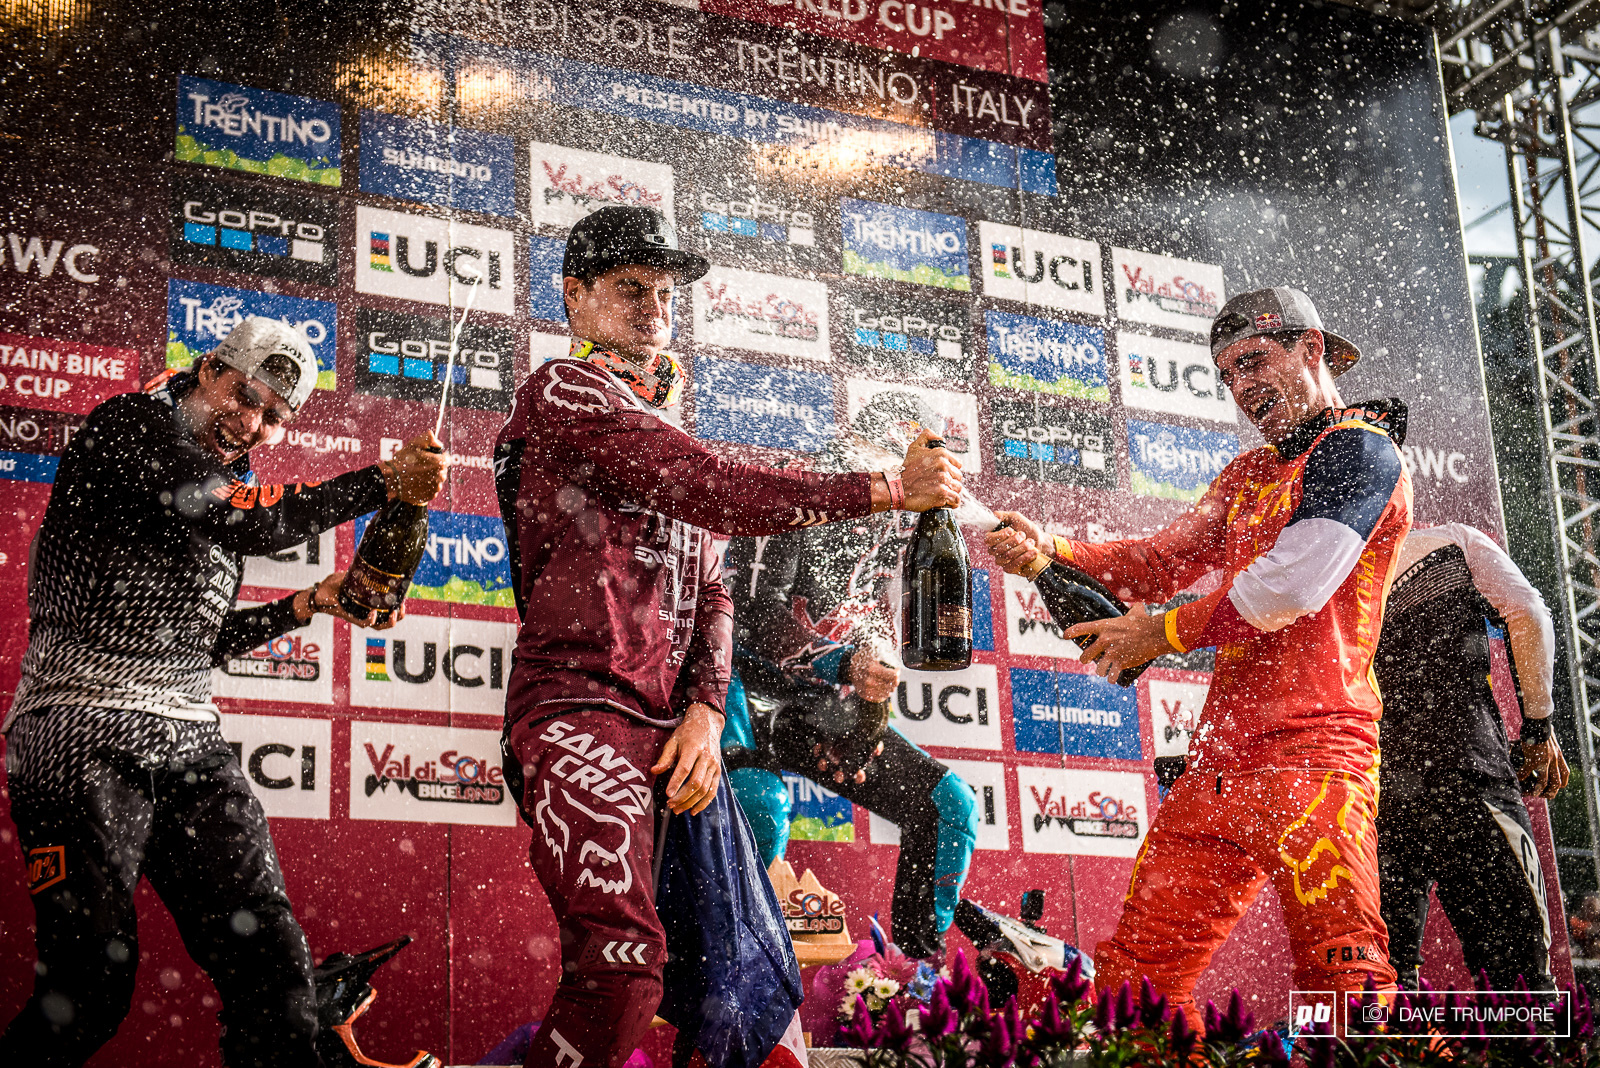 With three Frenchmen on the podium today the champagne toast got a bit out of hand.